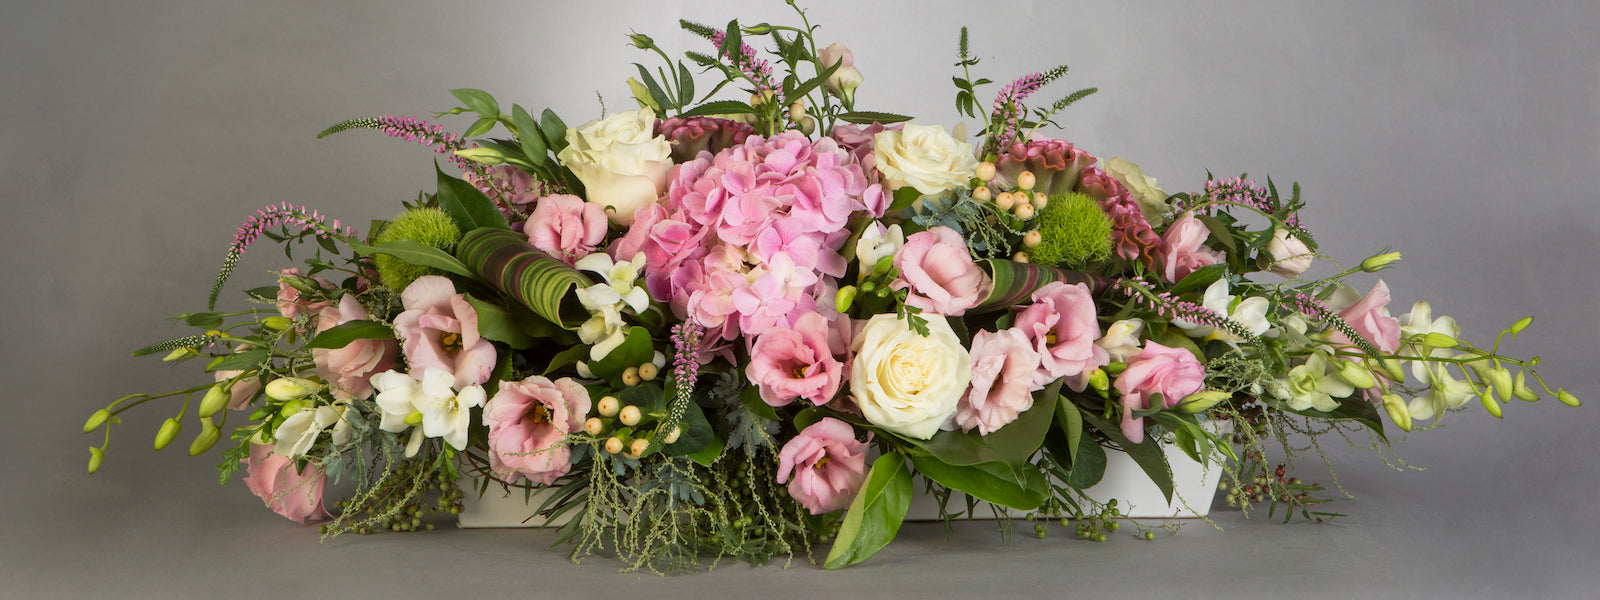 The Best Same Day Flower Delivery Melbourne Mordialloc Florist